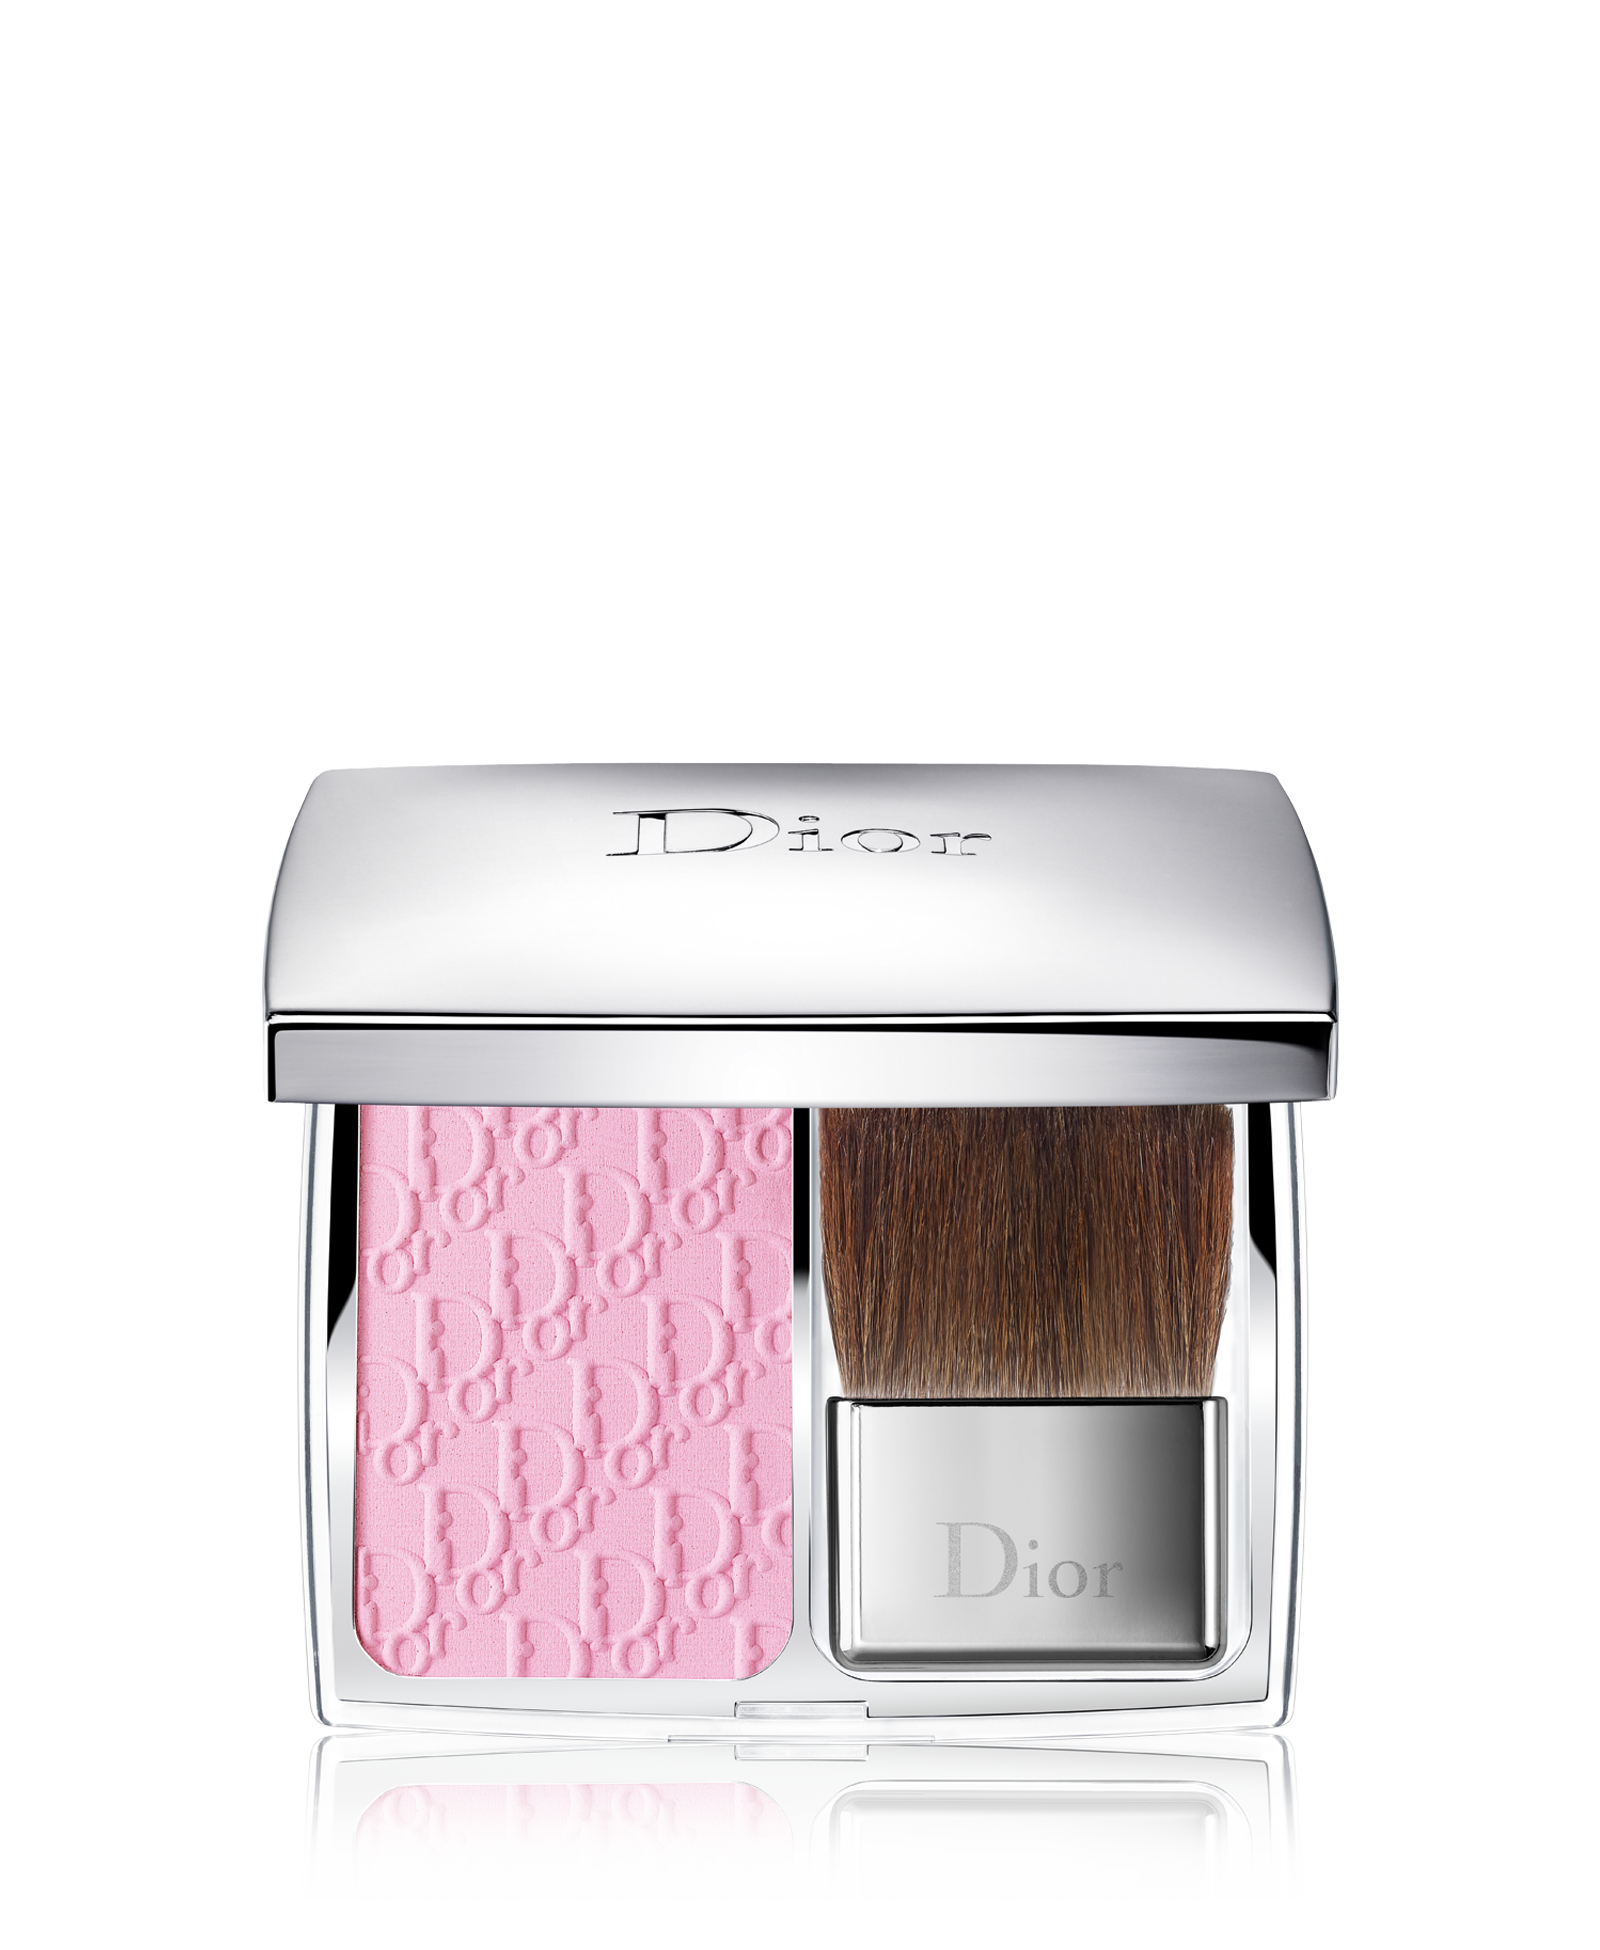 Diorskin by Dior on Dior Beauty Website